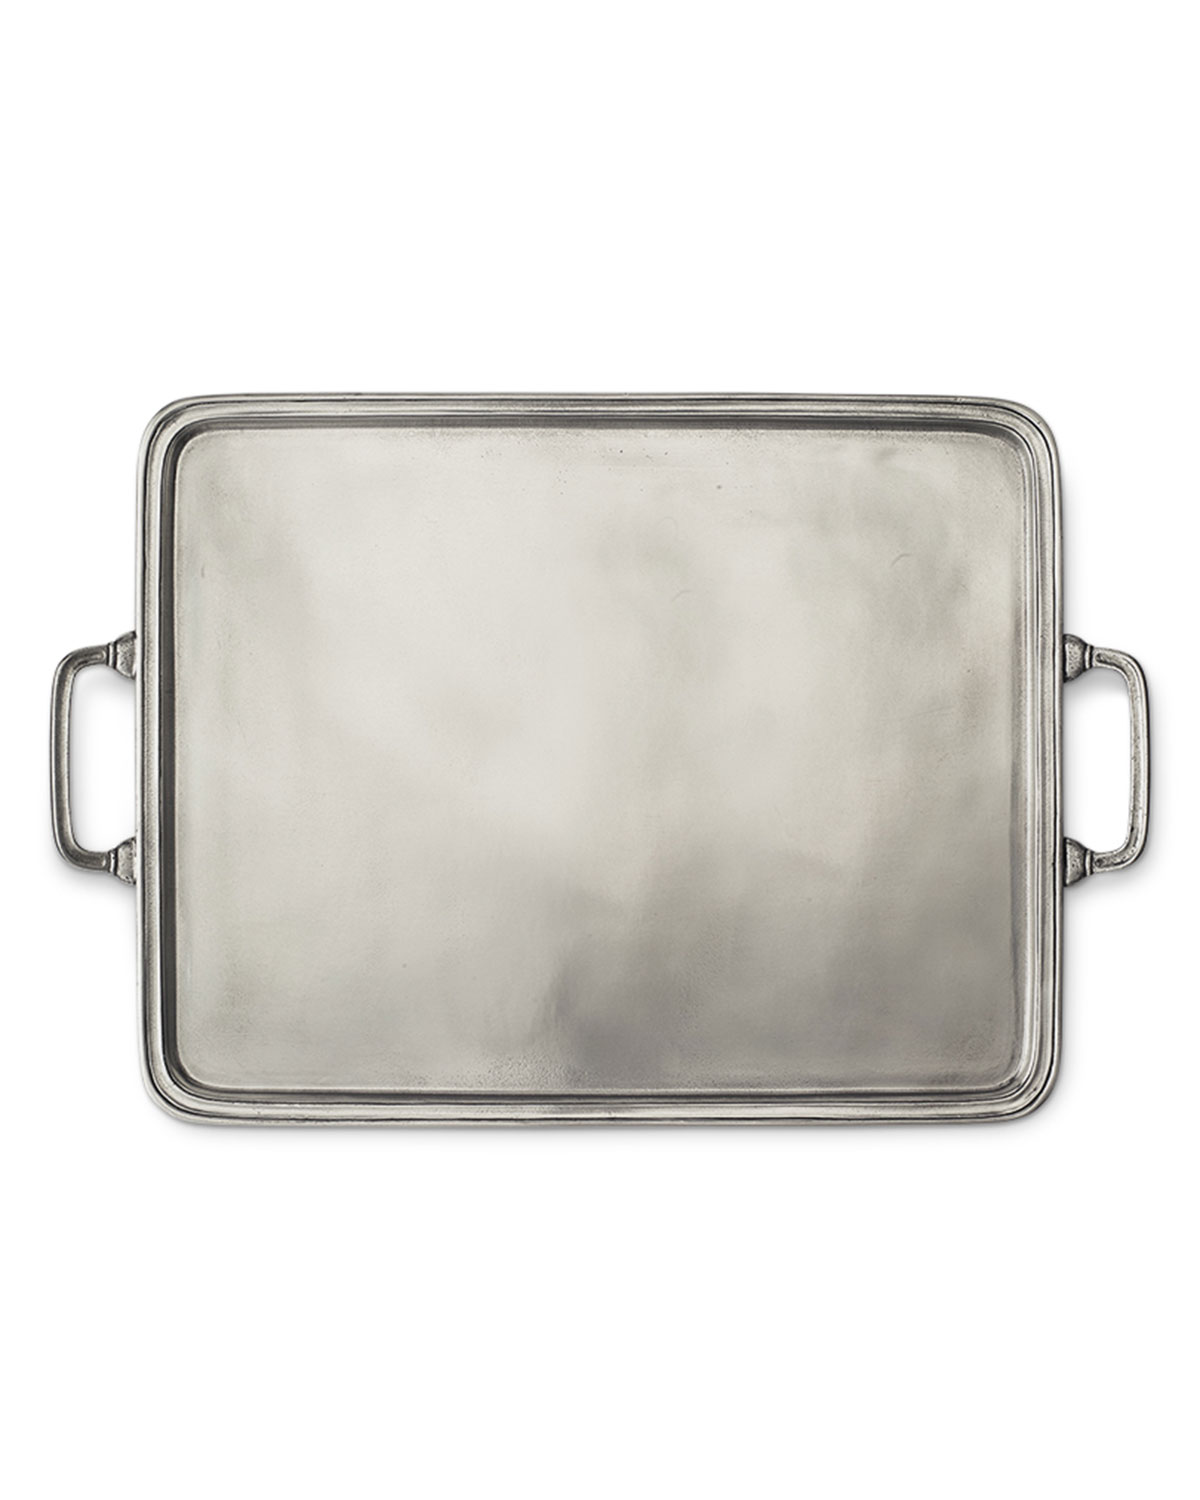 Match X-Large Rectangle Tray with Handles